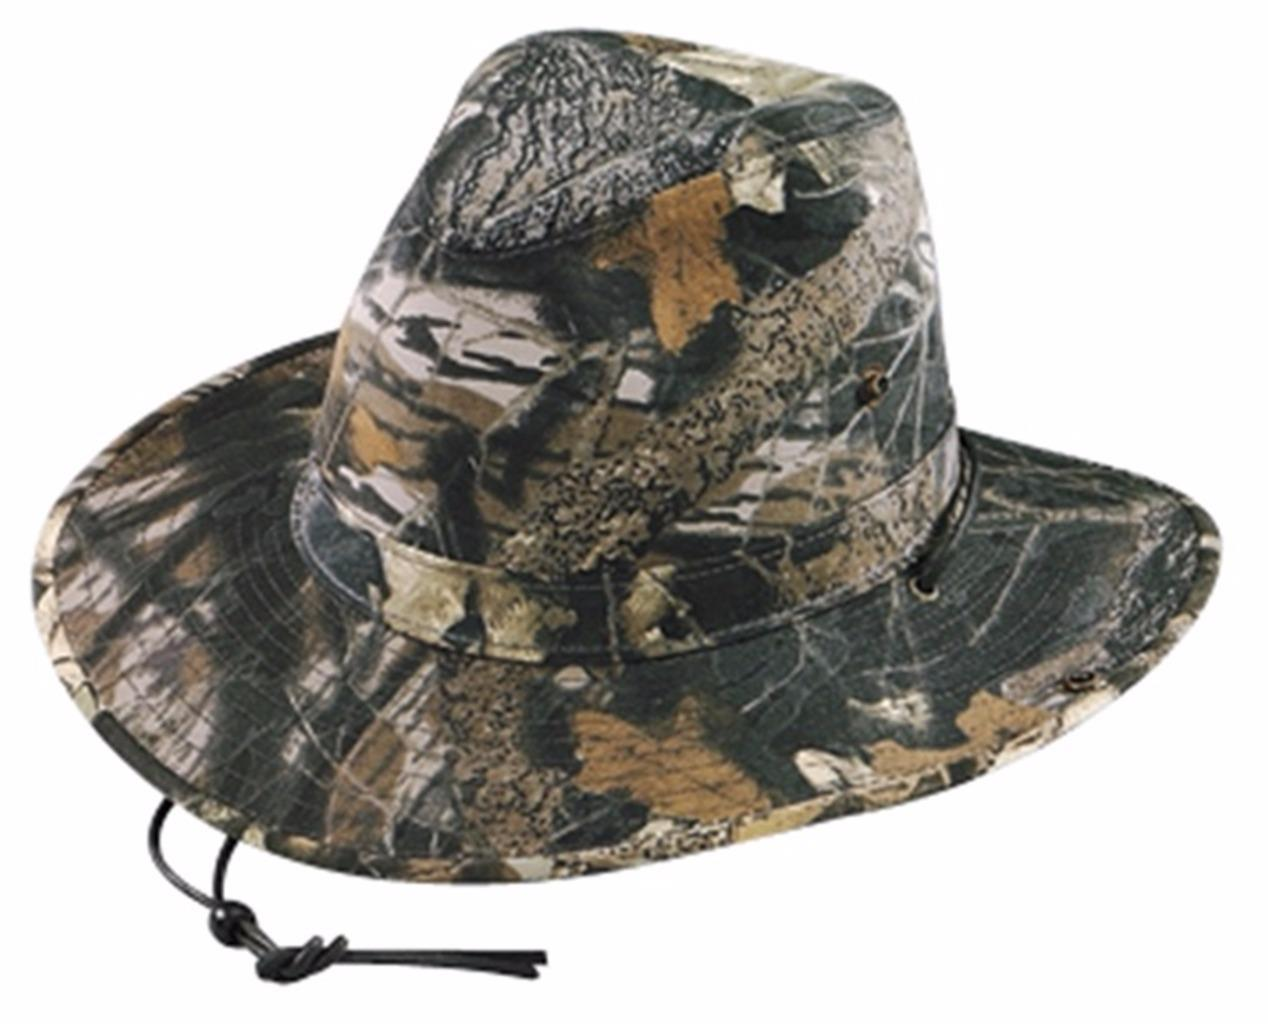 c41a0309562 NEW Henschel Hat Lined AUSSIE CAMO Hunting and 50 similar items